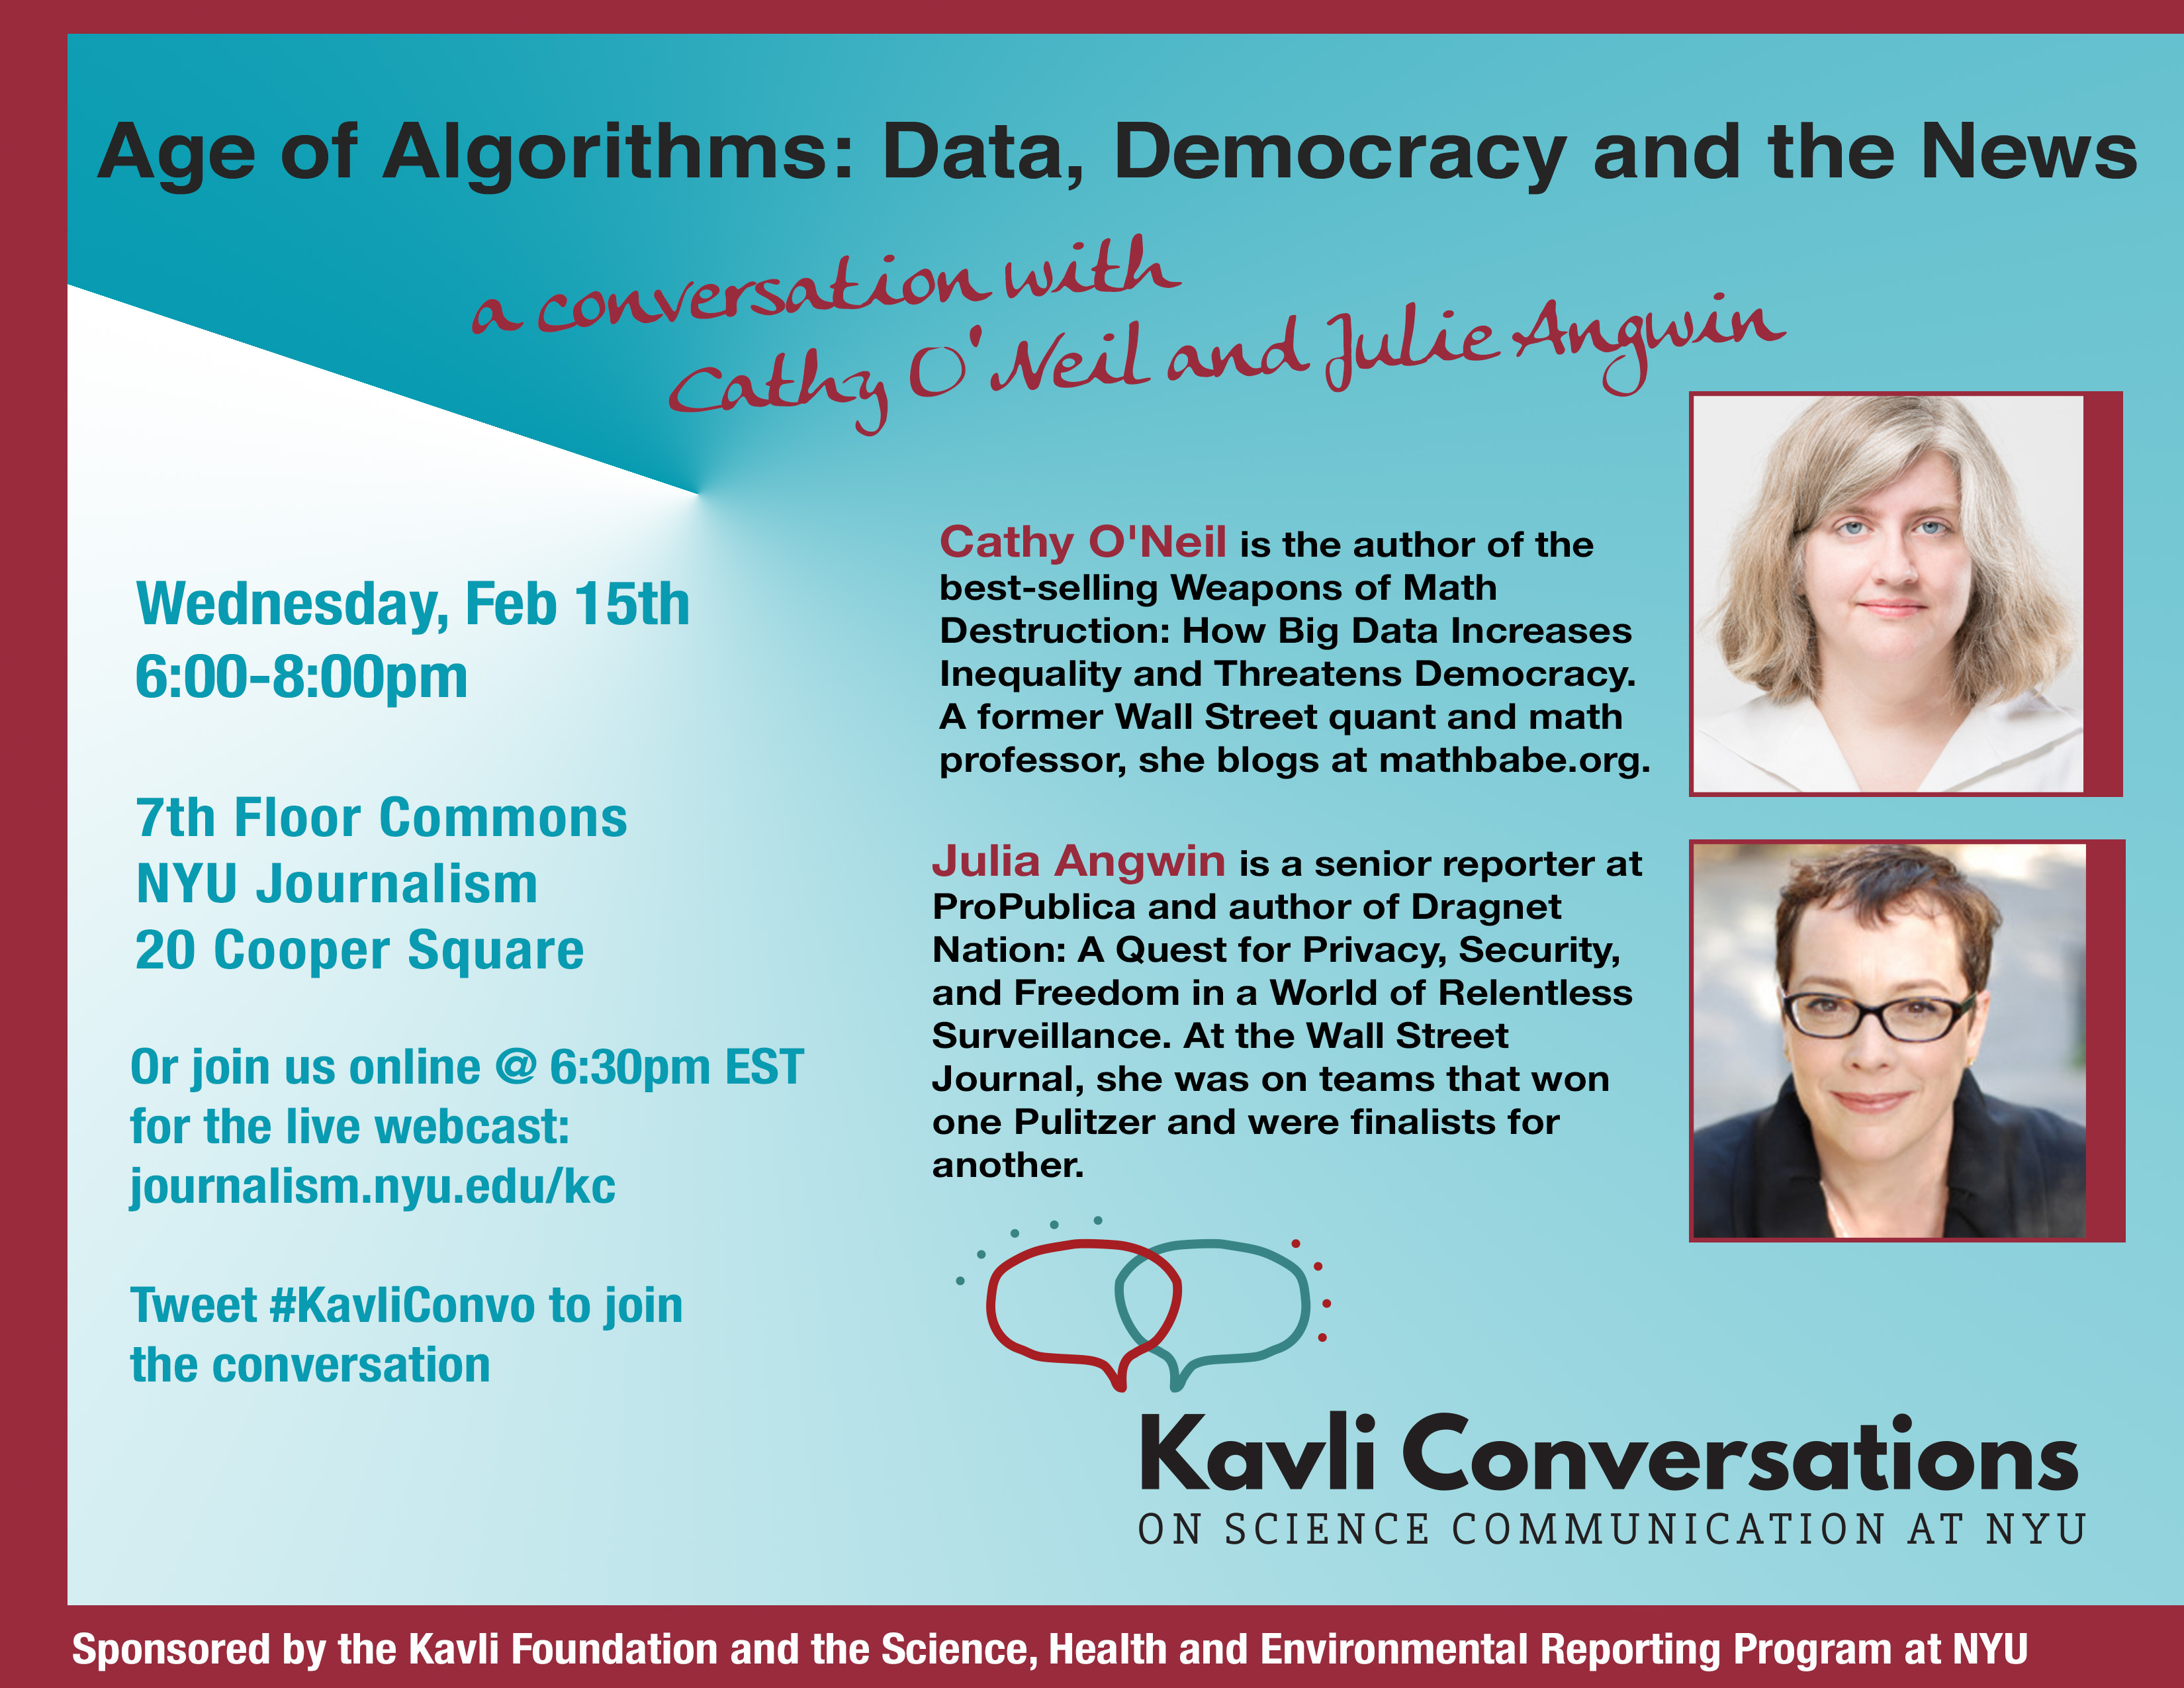 Age of Algorithms: Data, Democracy and the News - Event Poster 15 Feb 2017